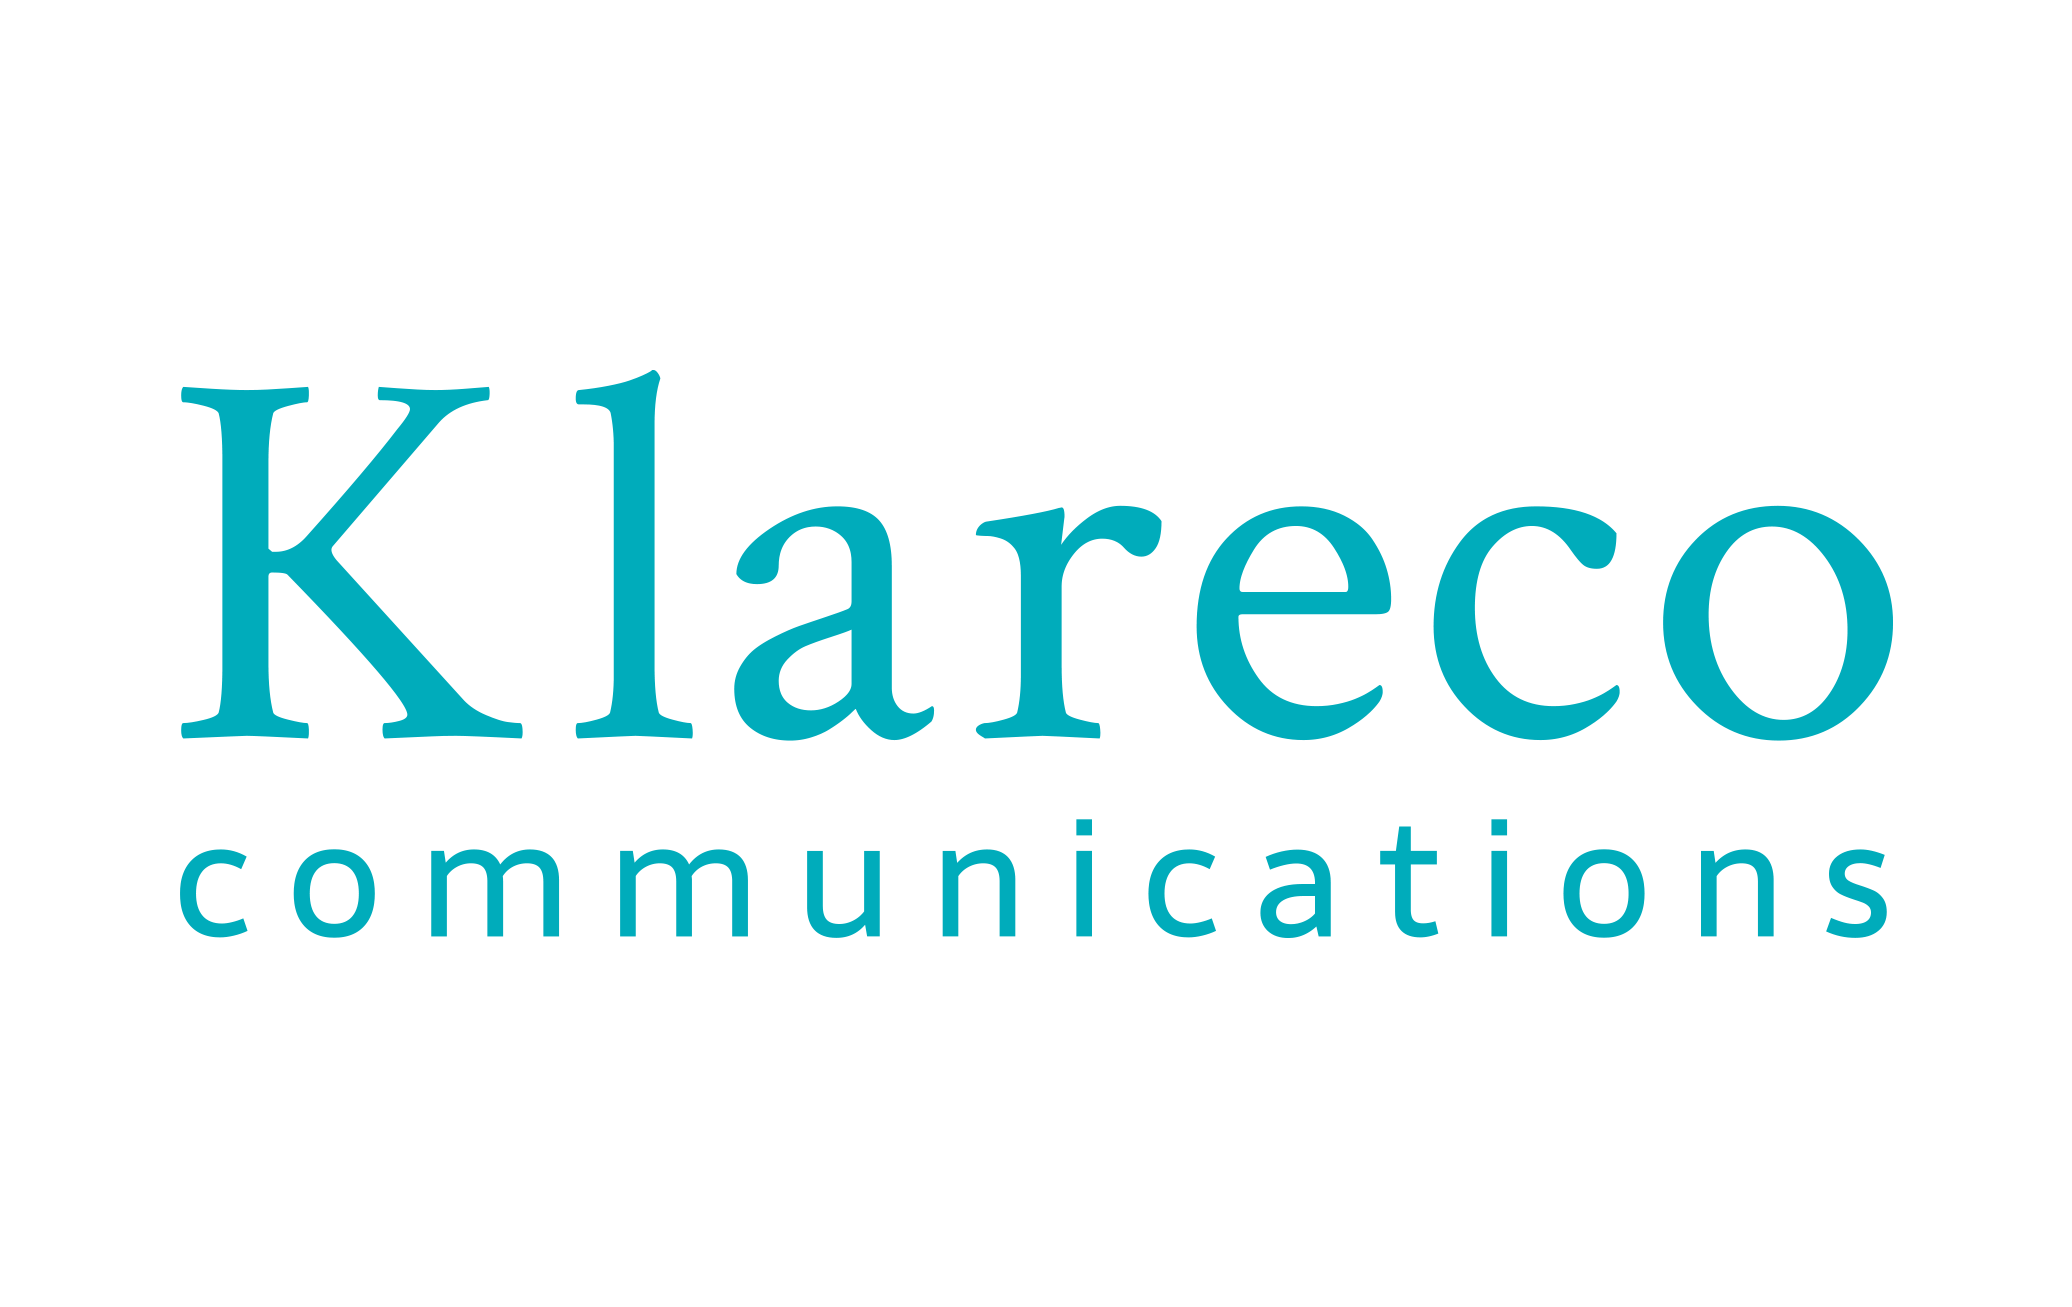 Website Logos_Klareco_v02.png